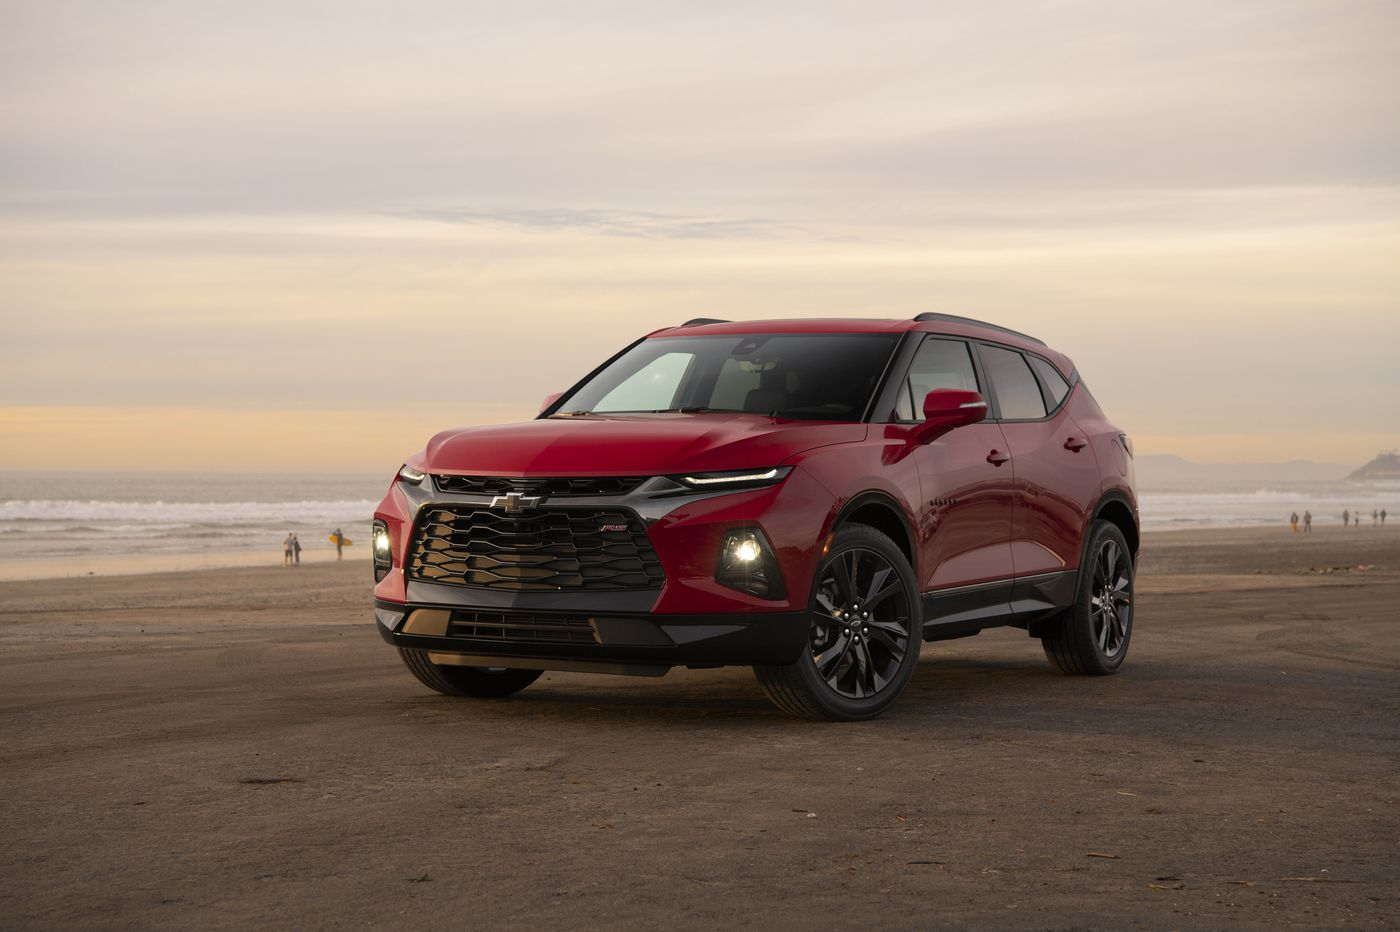 The return of the Blazer shows Chevrolet has learned a thing or three